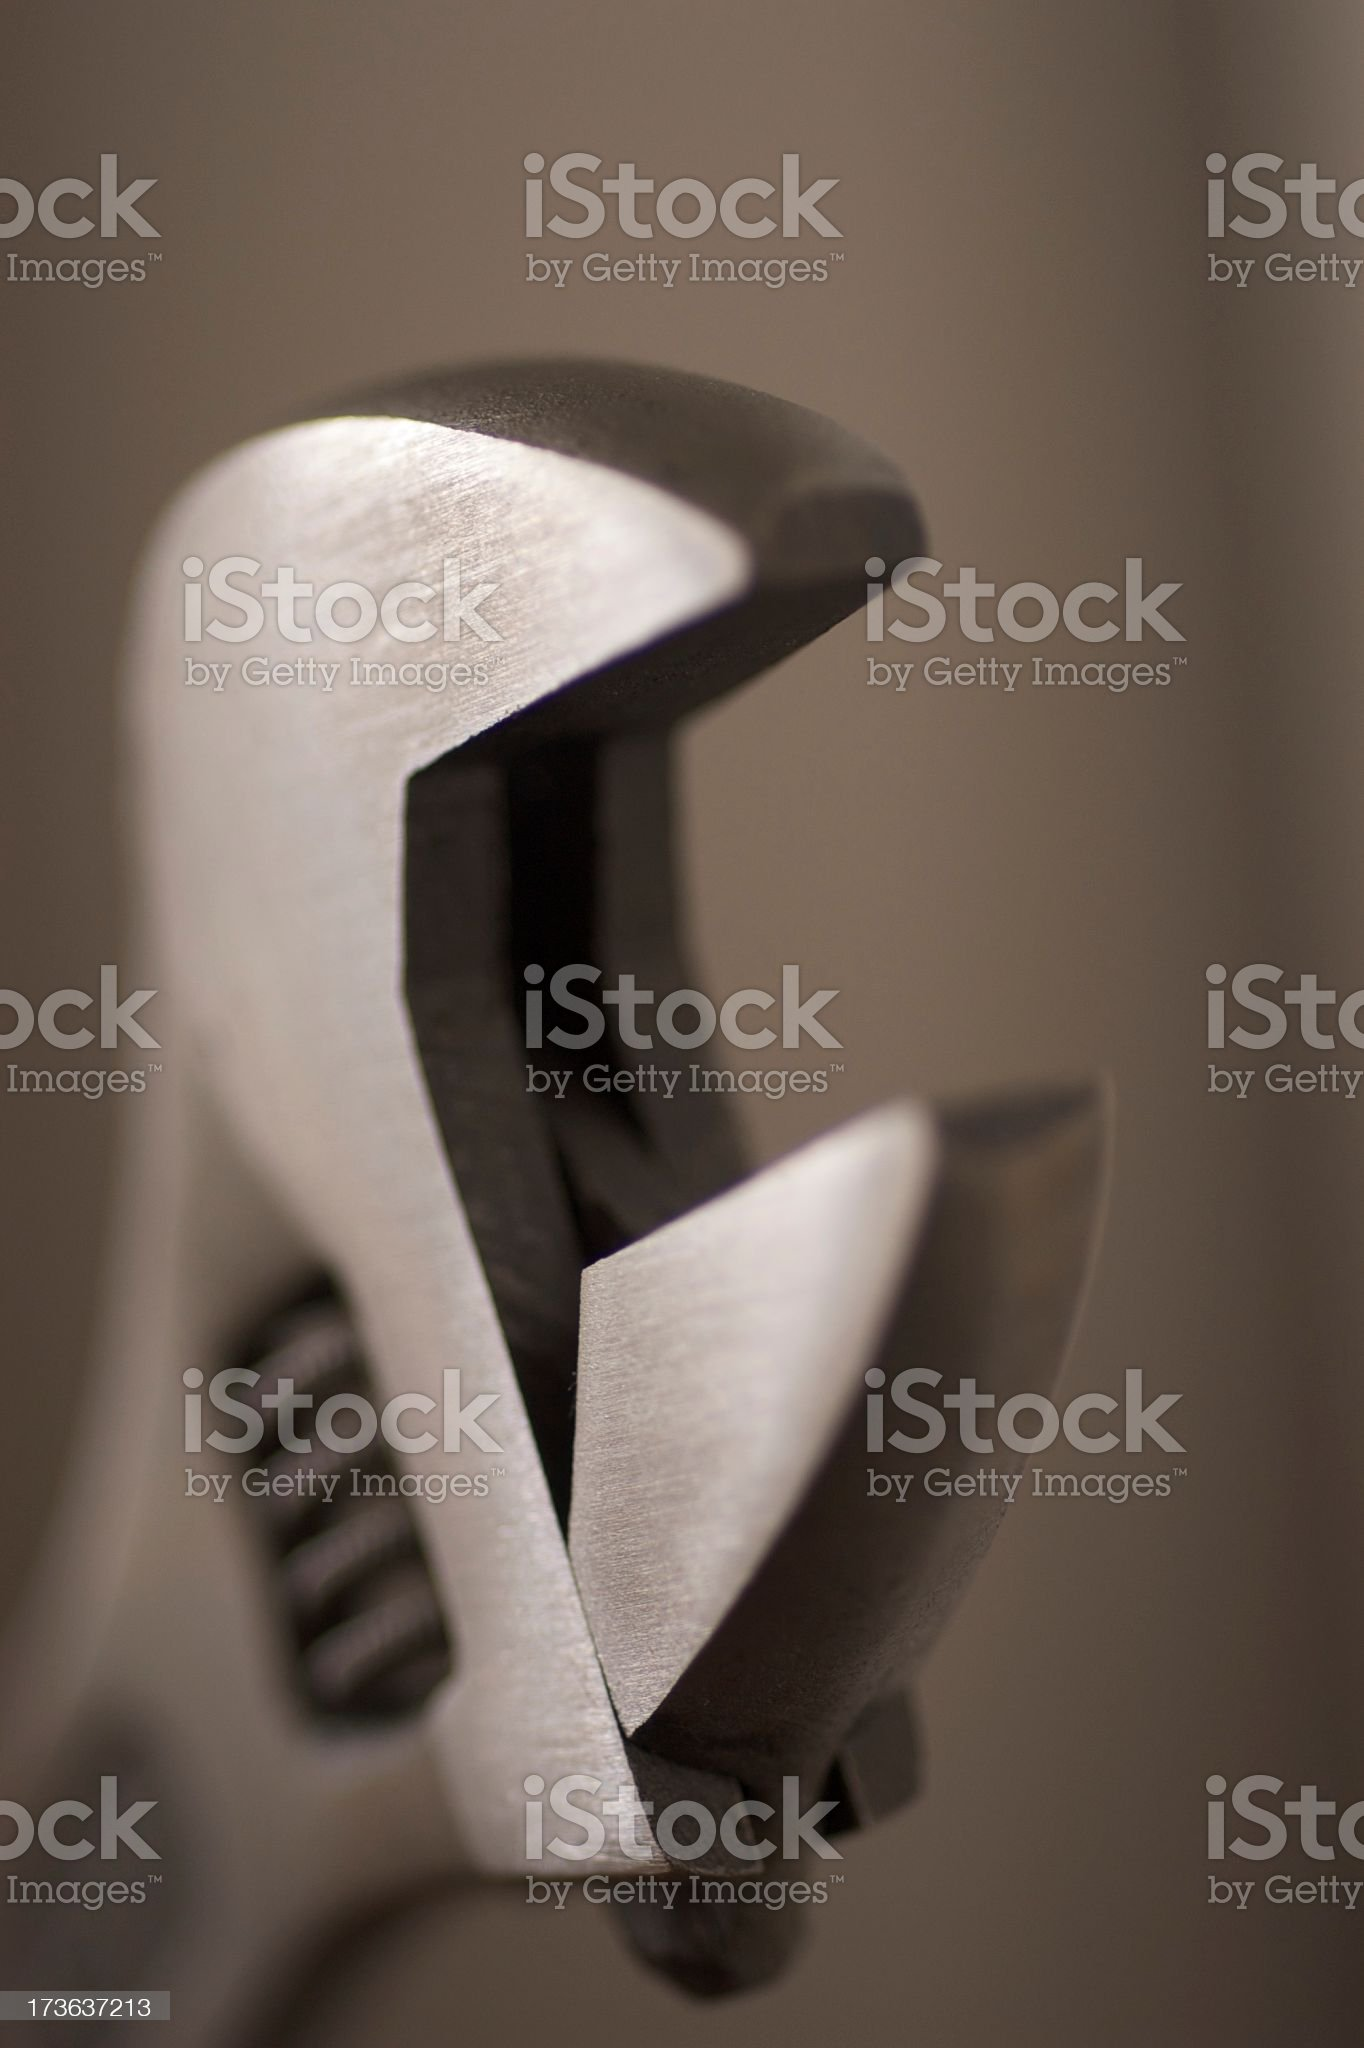 Wrench close up open royalty-free stock photo